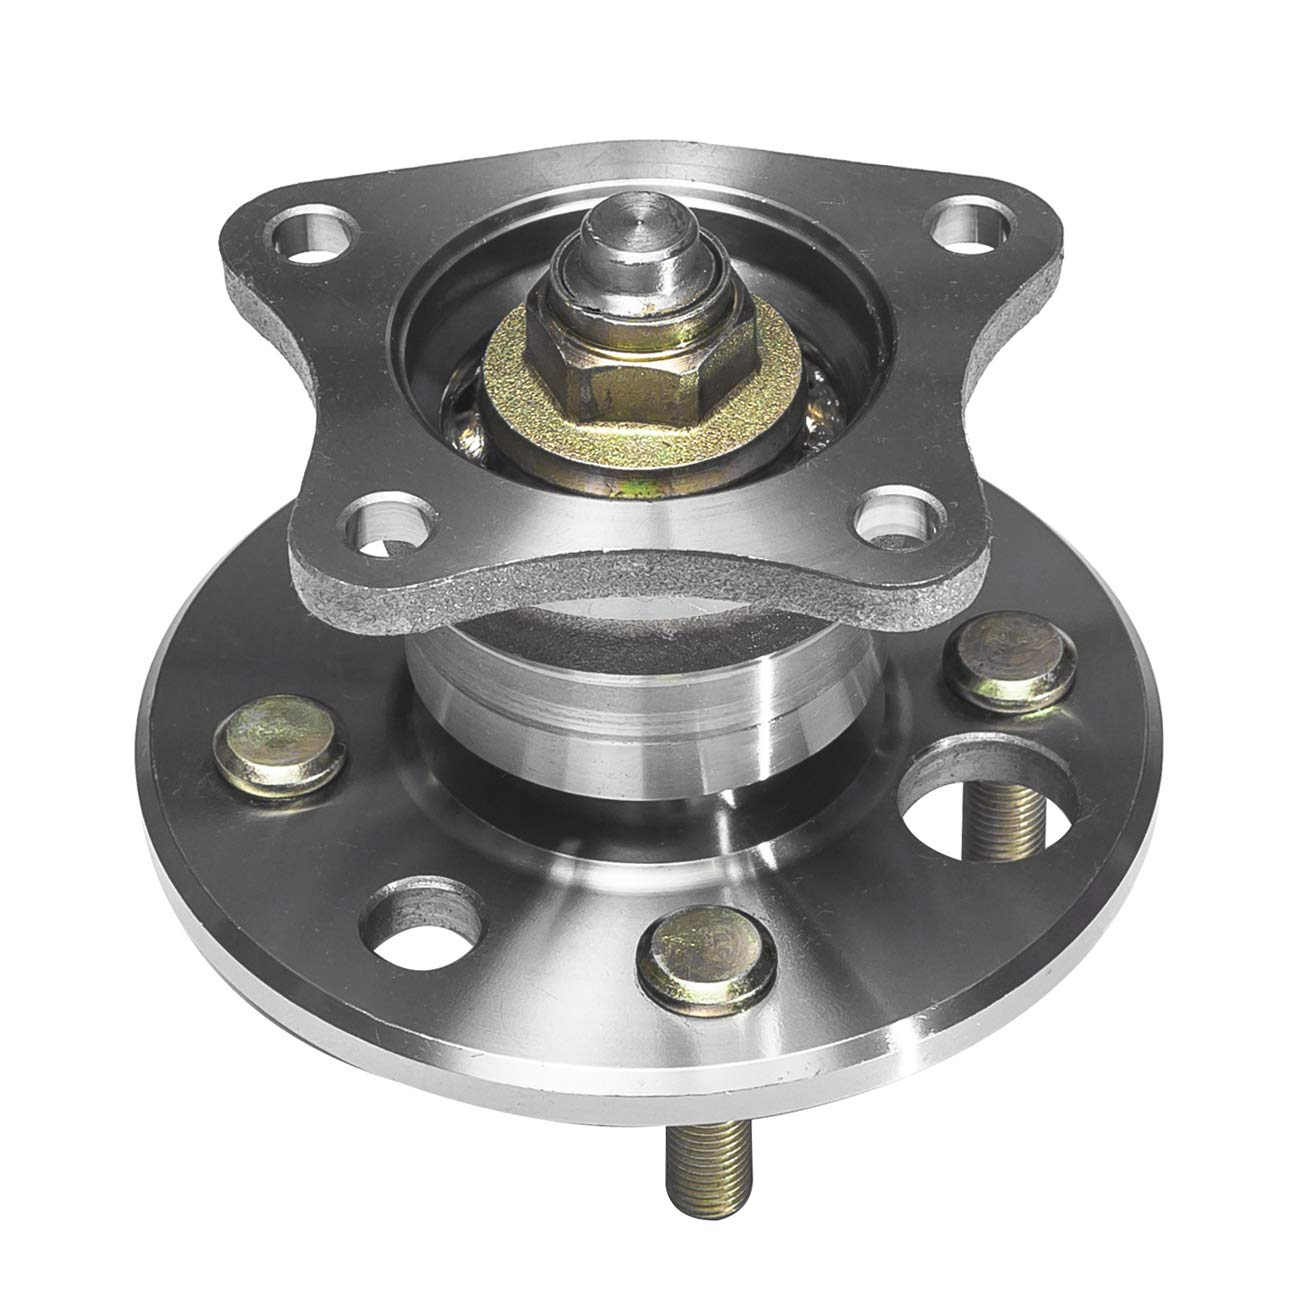 TUCAREST 512018 Rear Wheel Bearing and Hub Assembly Compatible 1998-2002 Chevrolet Prizm 93-97 Geo Prizm 93-02 Toyota Corolla FWD 4 Lug Non-ABS